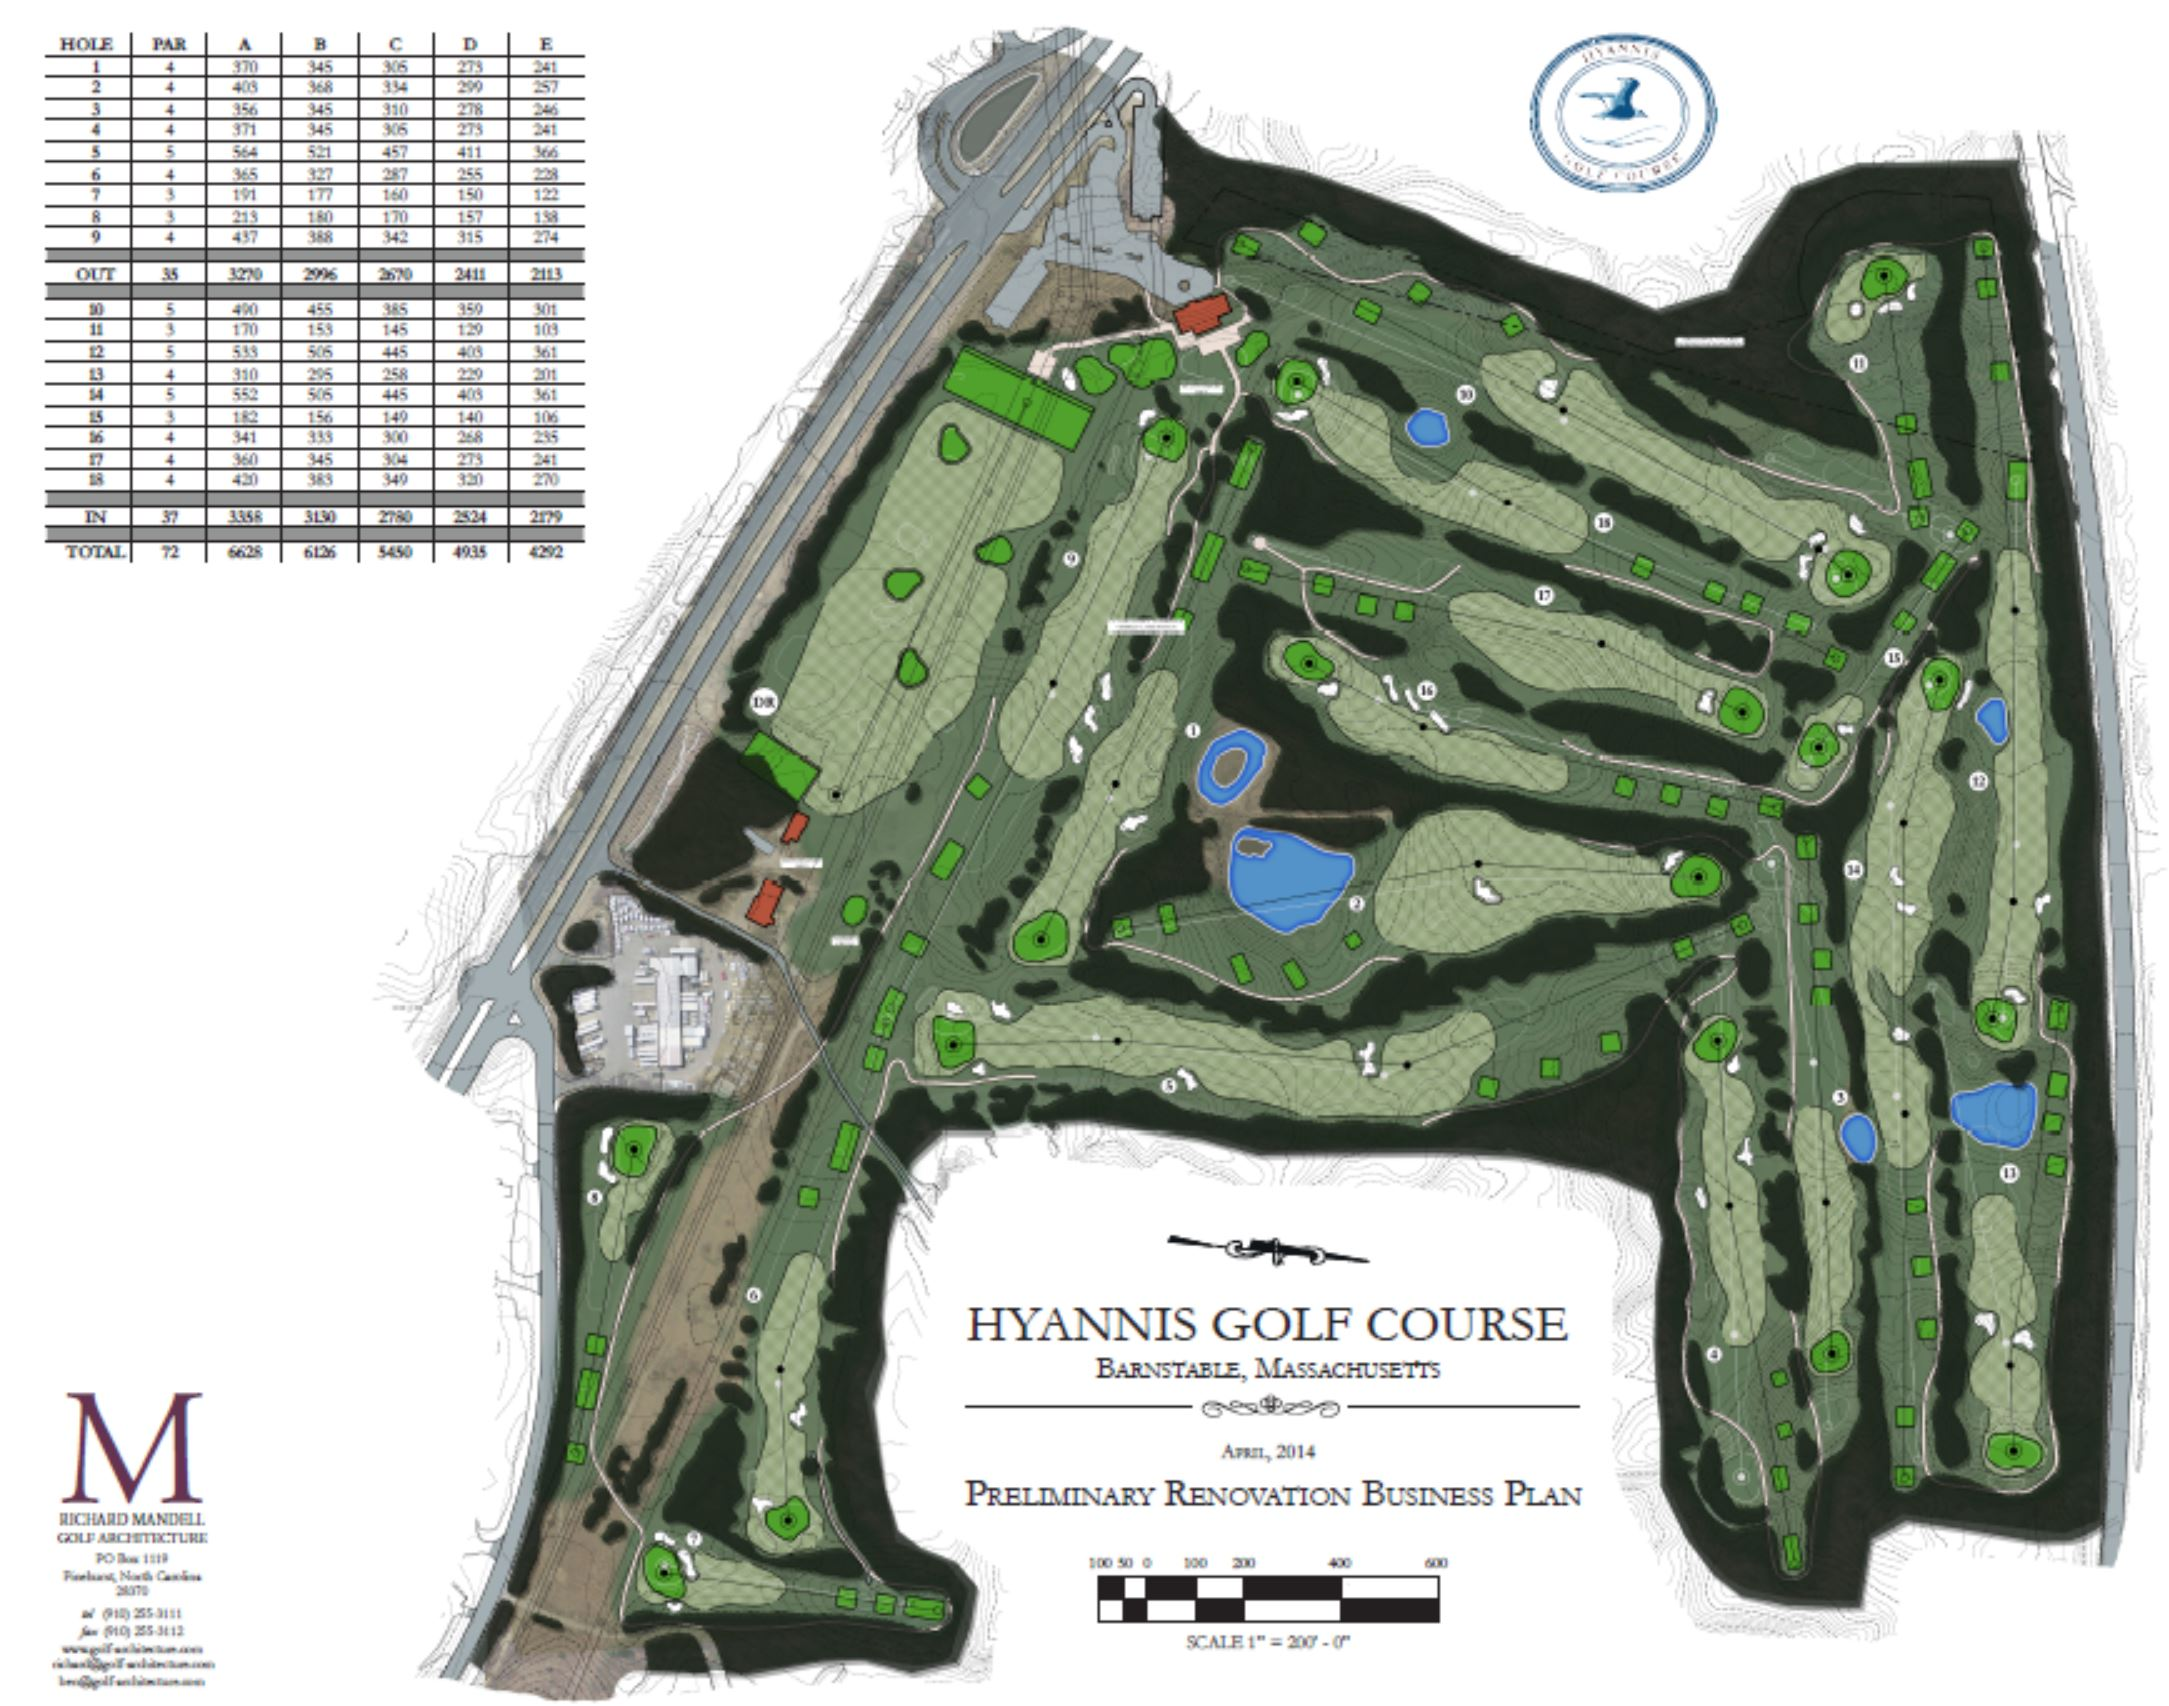 Hyannis Golf Course Master Plan